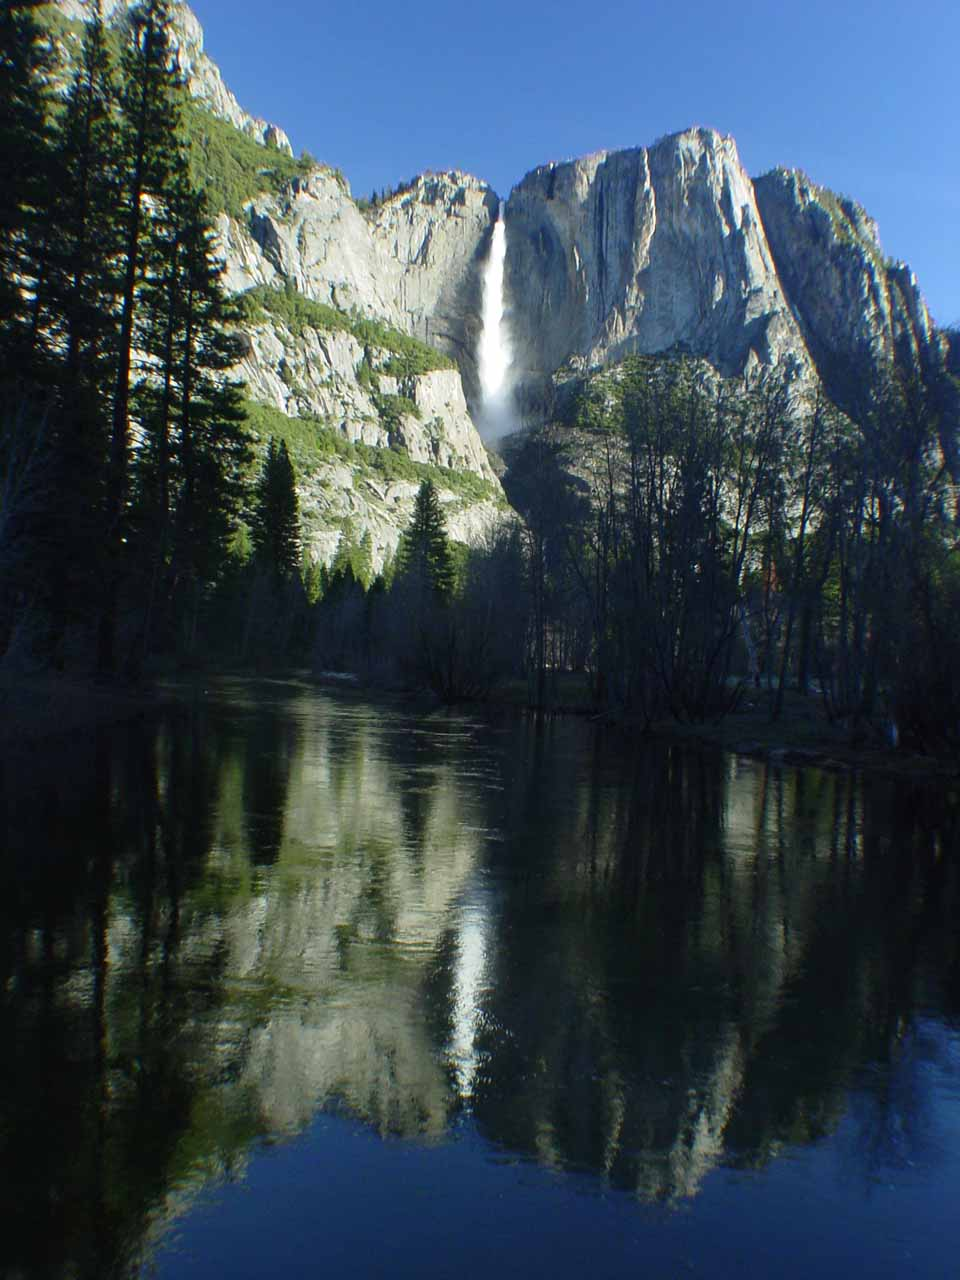 Yosemite Falls reflected in the shadowy foreground of the Merced River